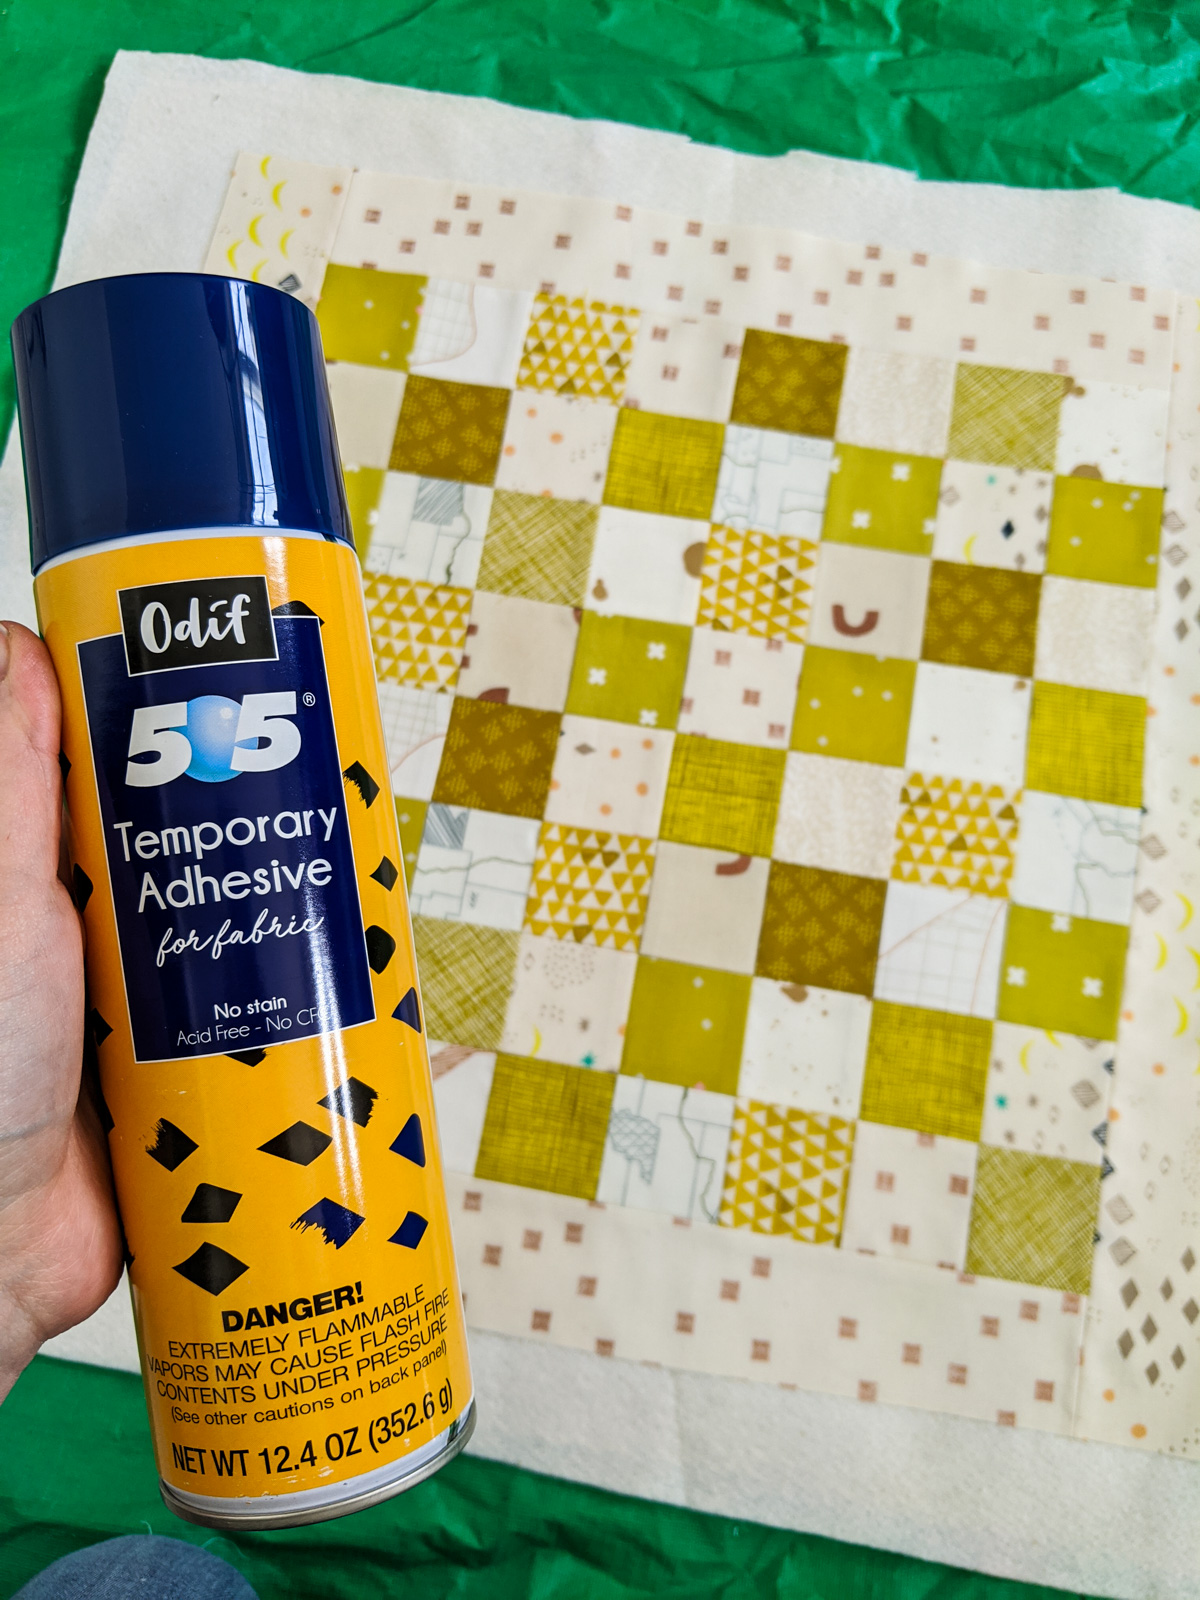 This DIY Quilted Checkerboard is the perfect project for any beginner looking to learn the basics of quilting in a fun, easy project!